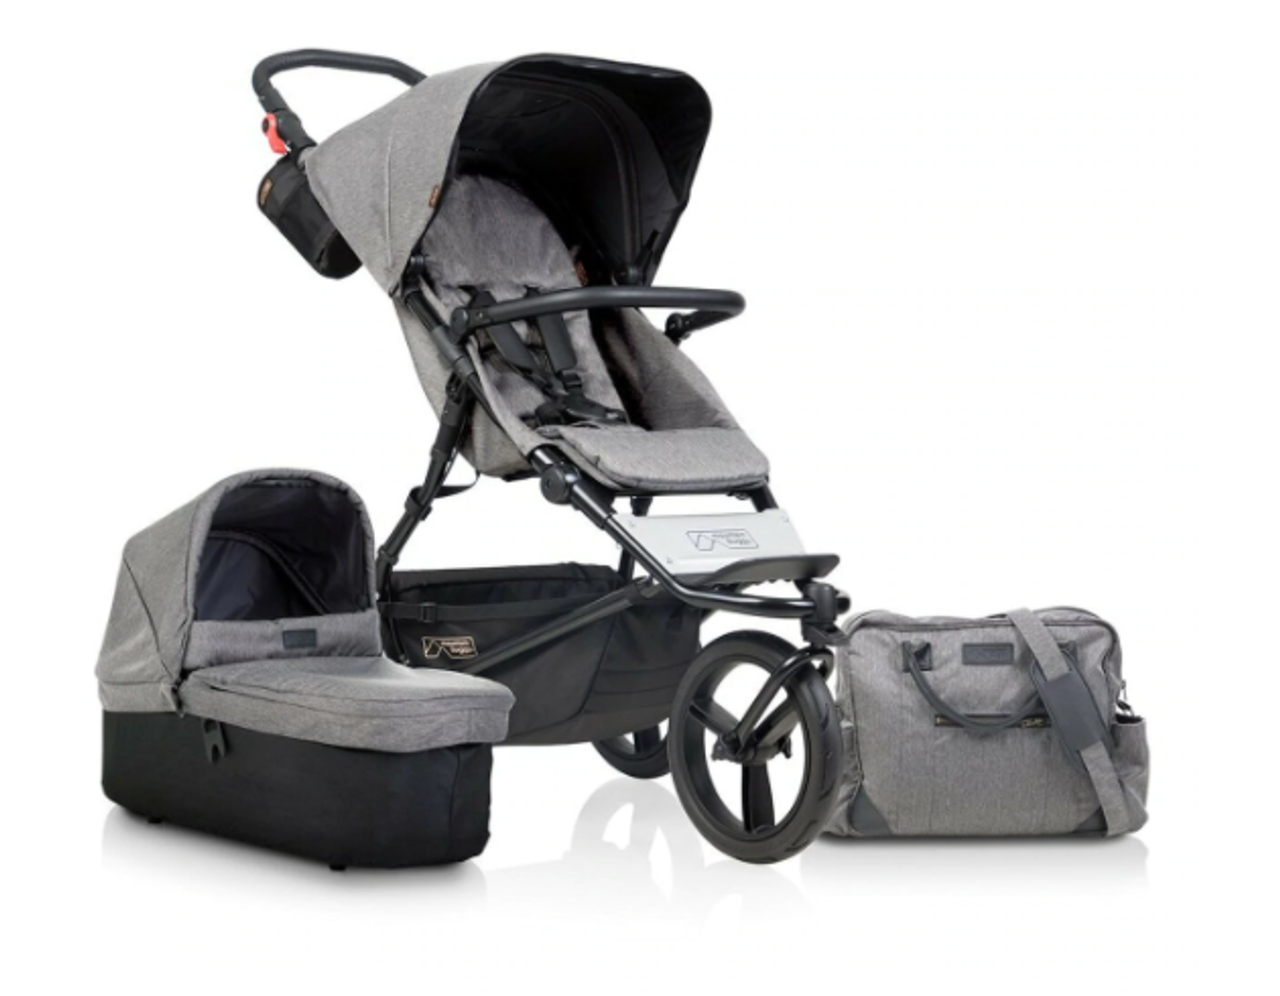 Mountain Buggy Luxury Collection Urban Jungle Herringbone Package Deal | Baby Barn Discounts Mountain Buggy pram package deal now with carrycot plus & matching nappy bag.